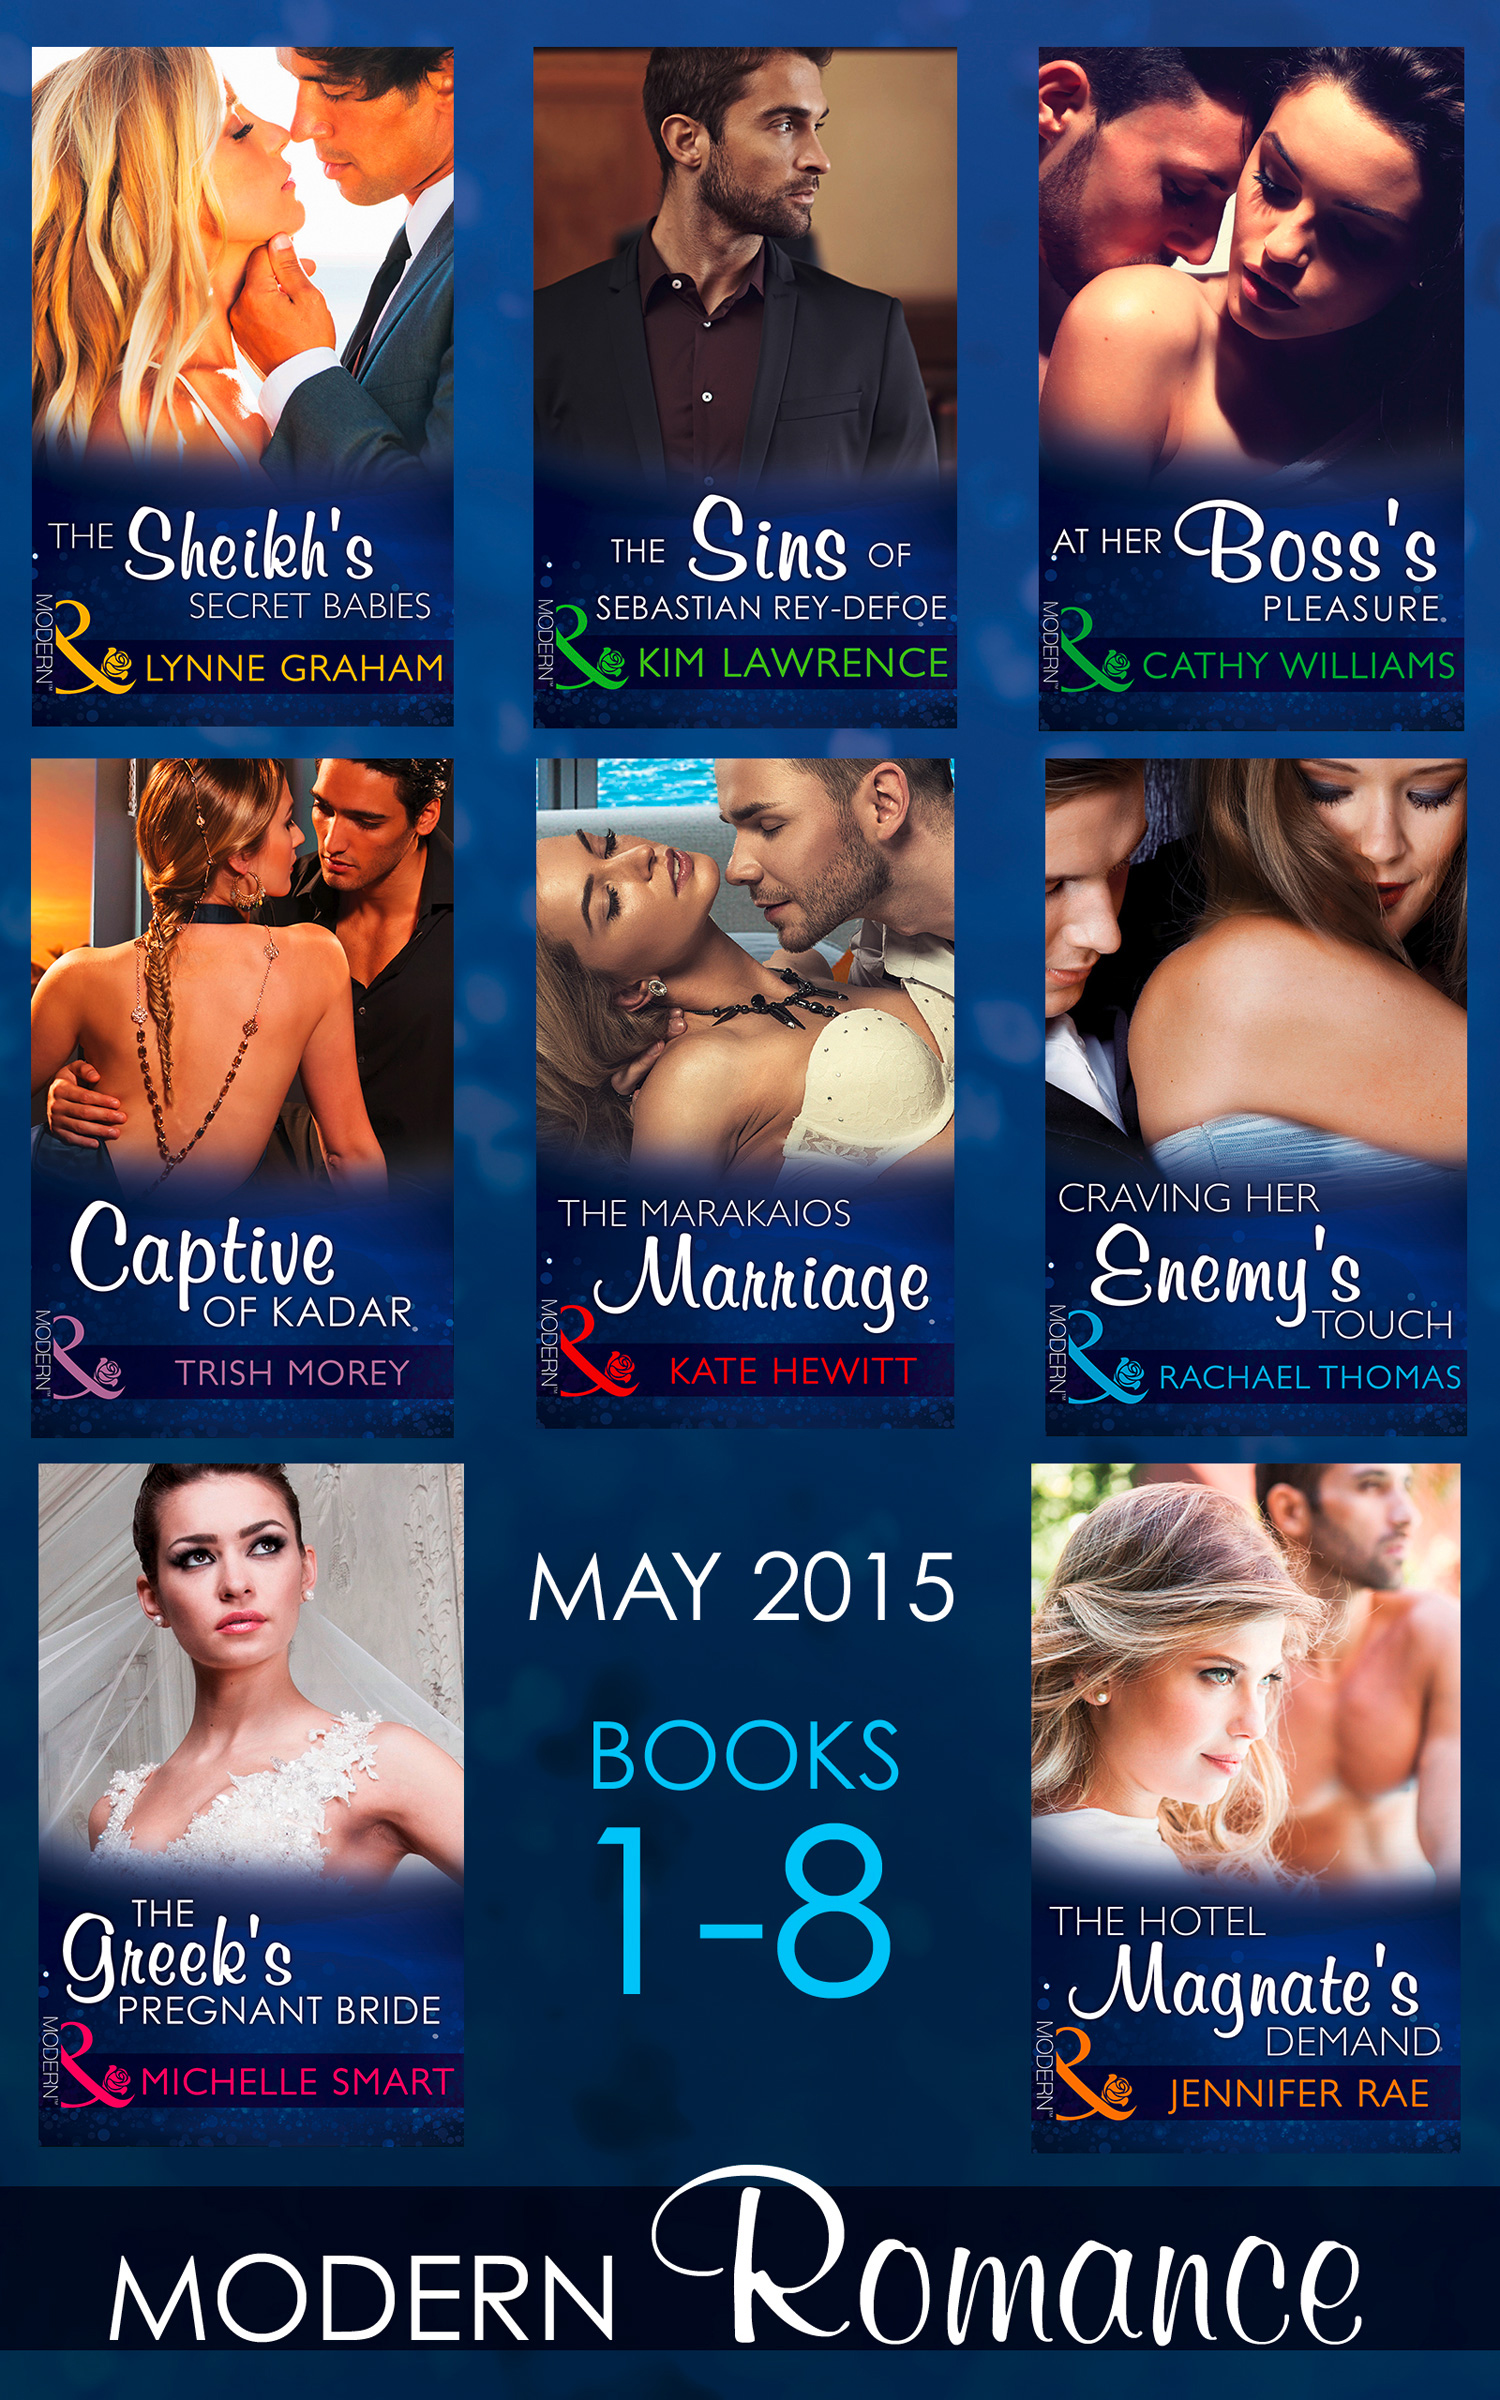 Modern Romance May 2015 Books 1-8